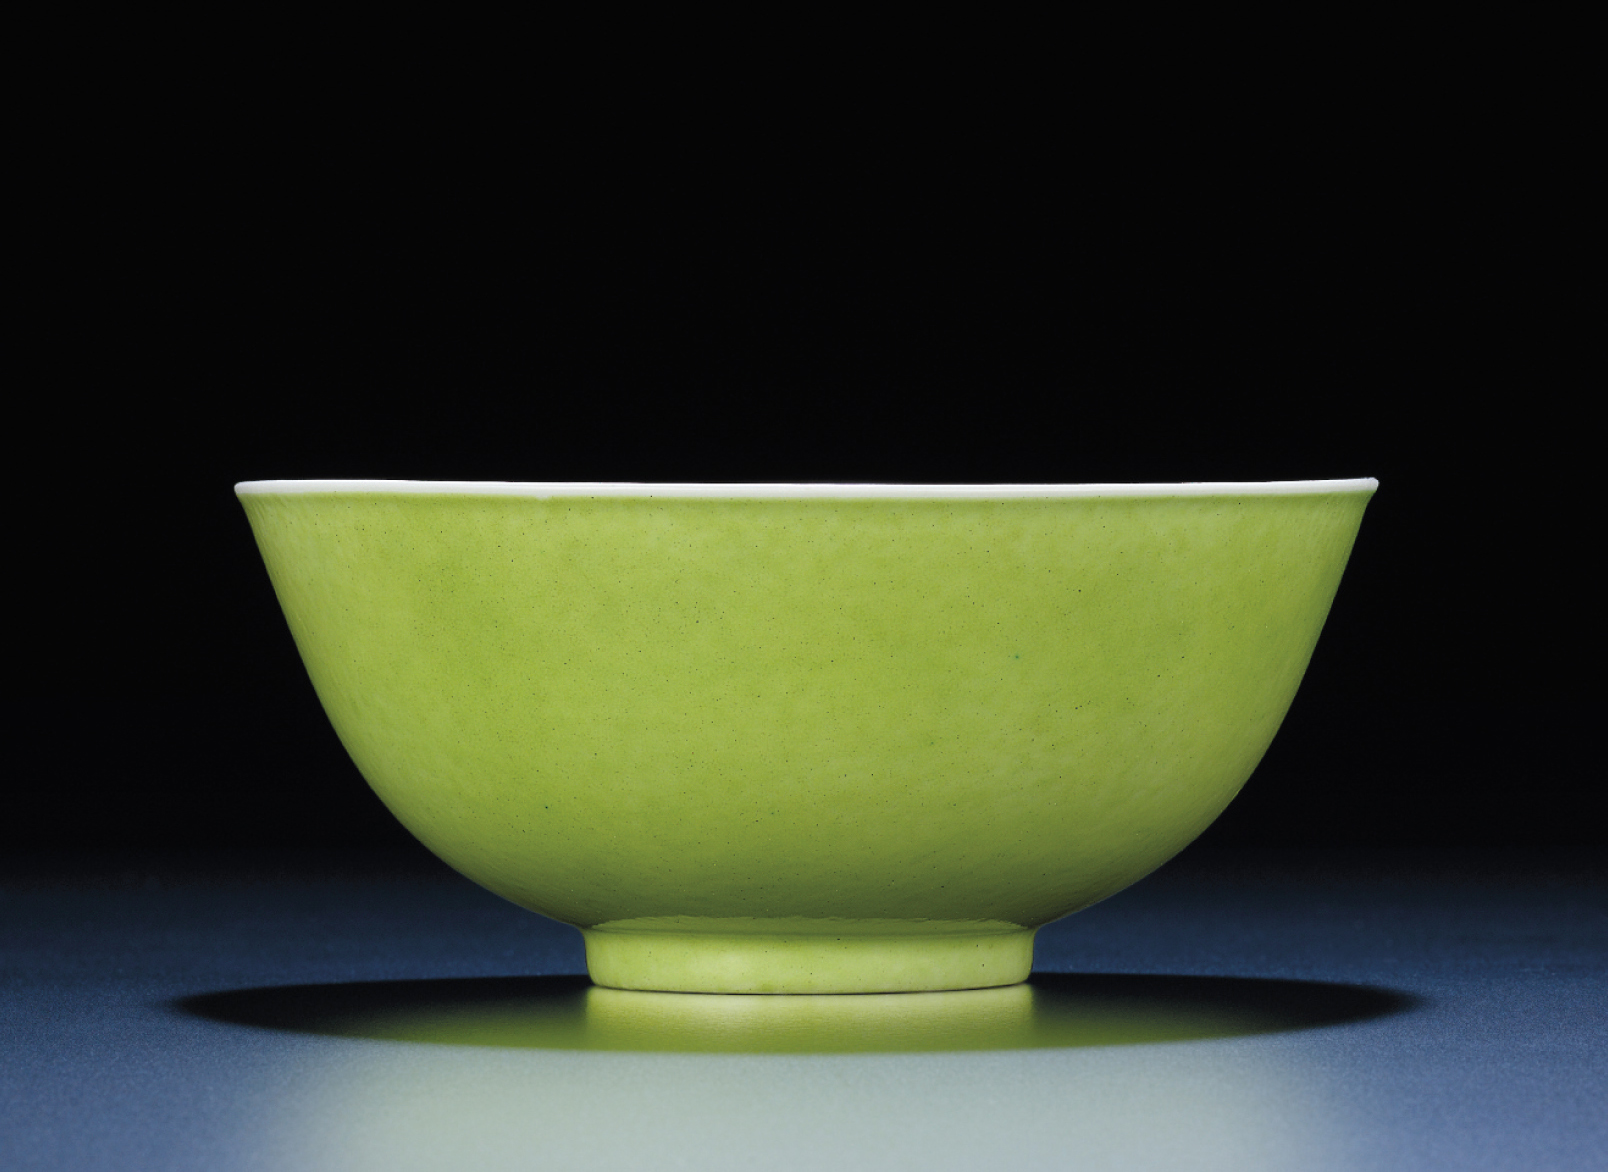 A RARE LIME-GREEN ENAMELLED BLUE AND WHITE BOWL